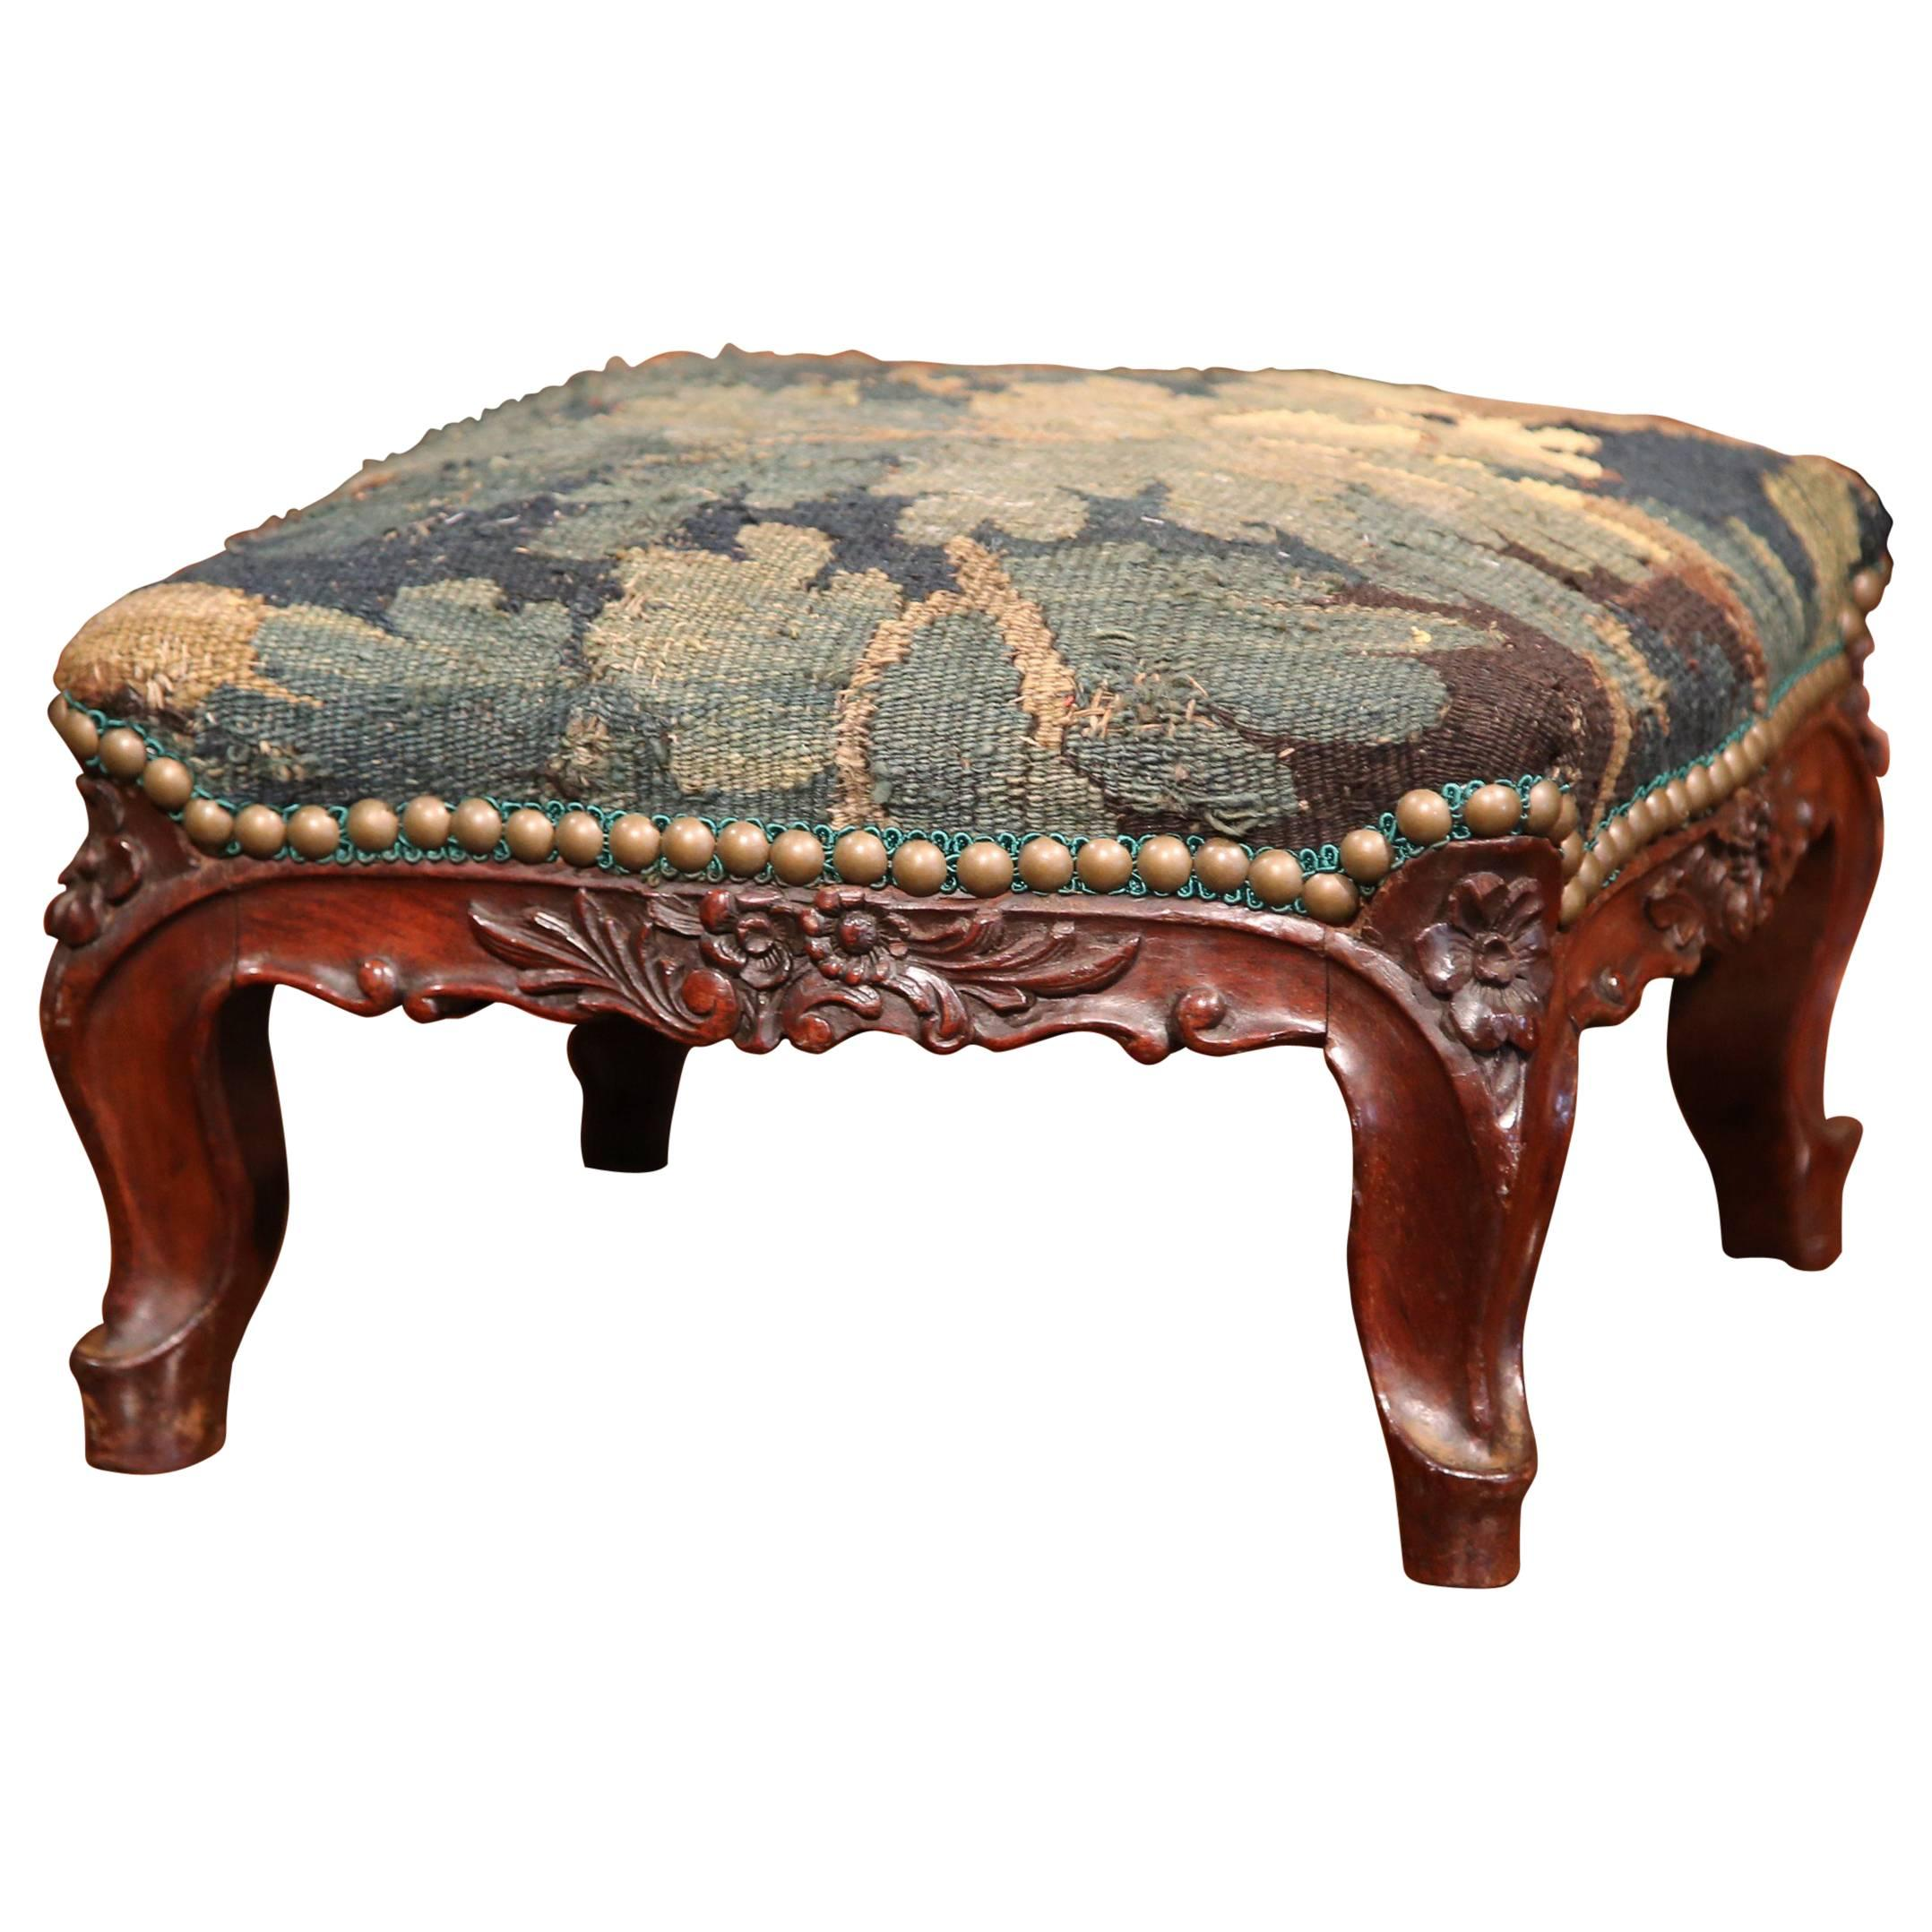 19th Century French Louis XV Carved Walnut Footstool With Aubusson Tapestry